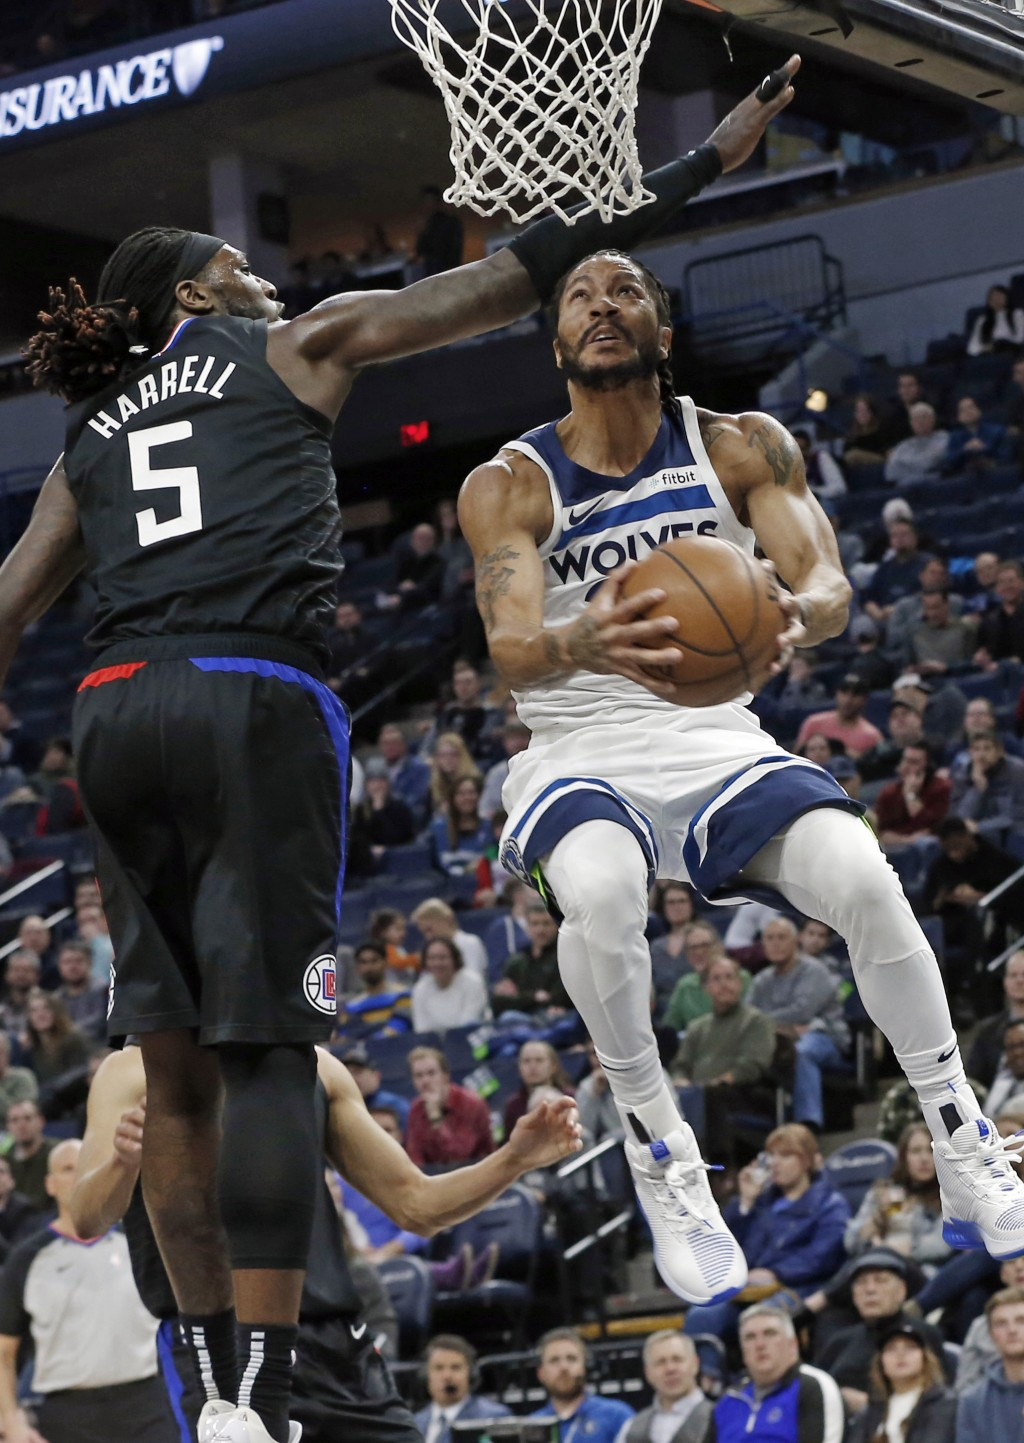 Minnesota Timberwolves' Derrick Rose, right, eyes the basket on a layup as Los Angeles Clippers' Montrezl Harrell defends in the first half of an NBA ...